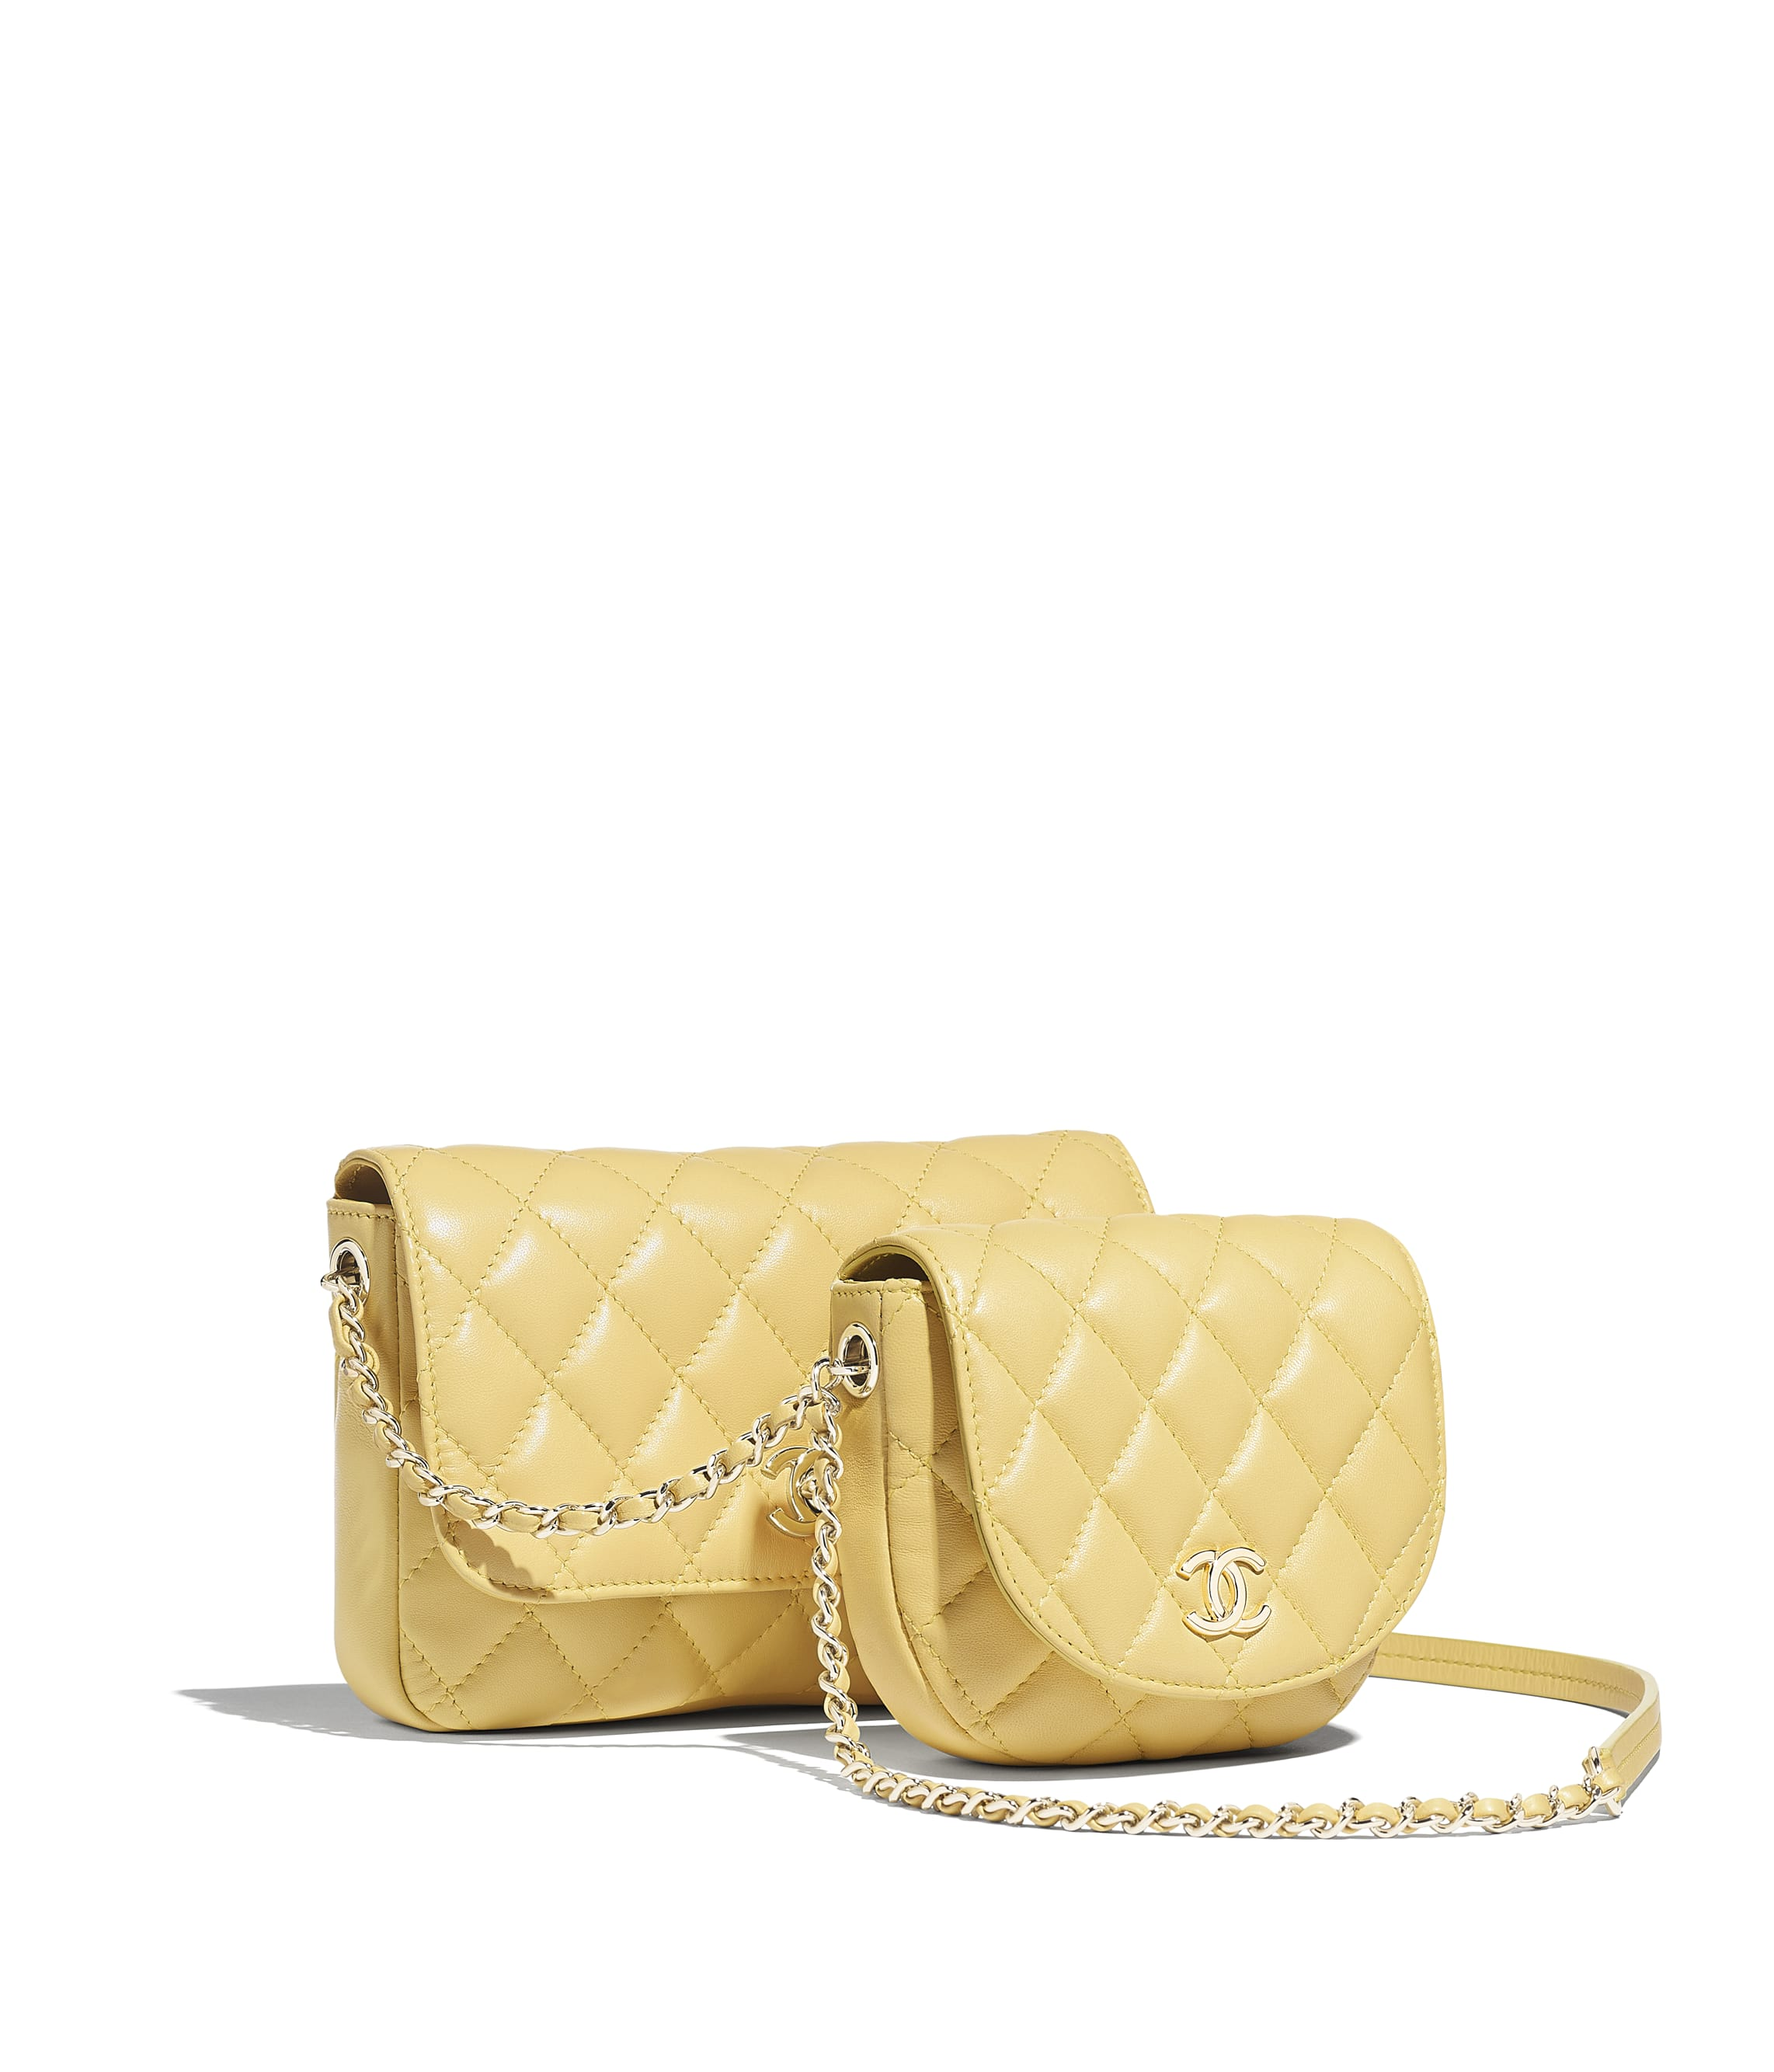 396c0cd458 Handbags - CHANEL